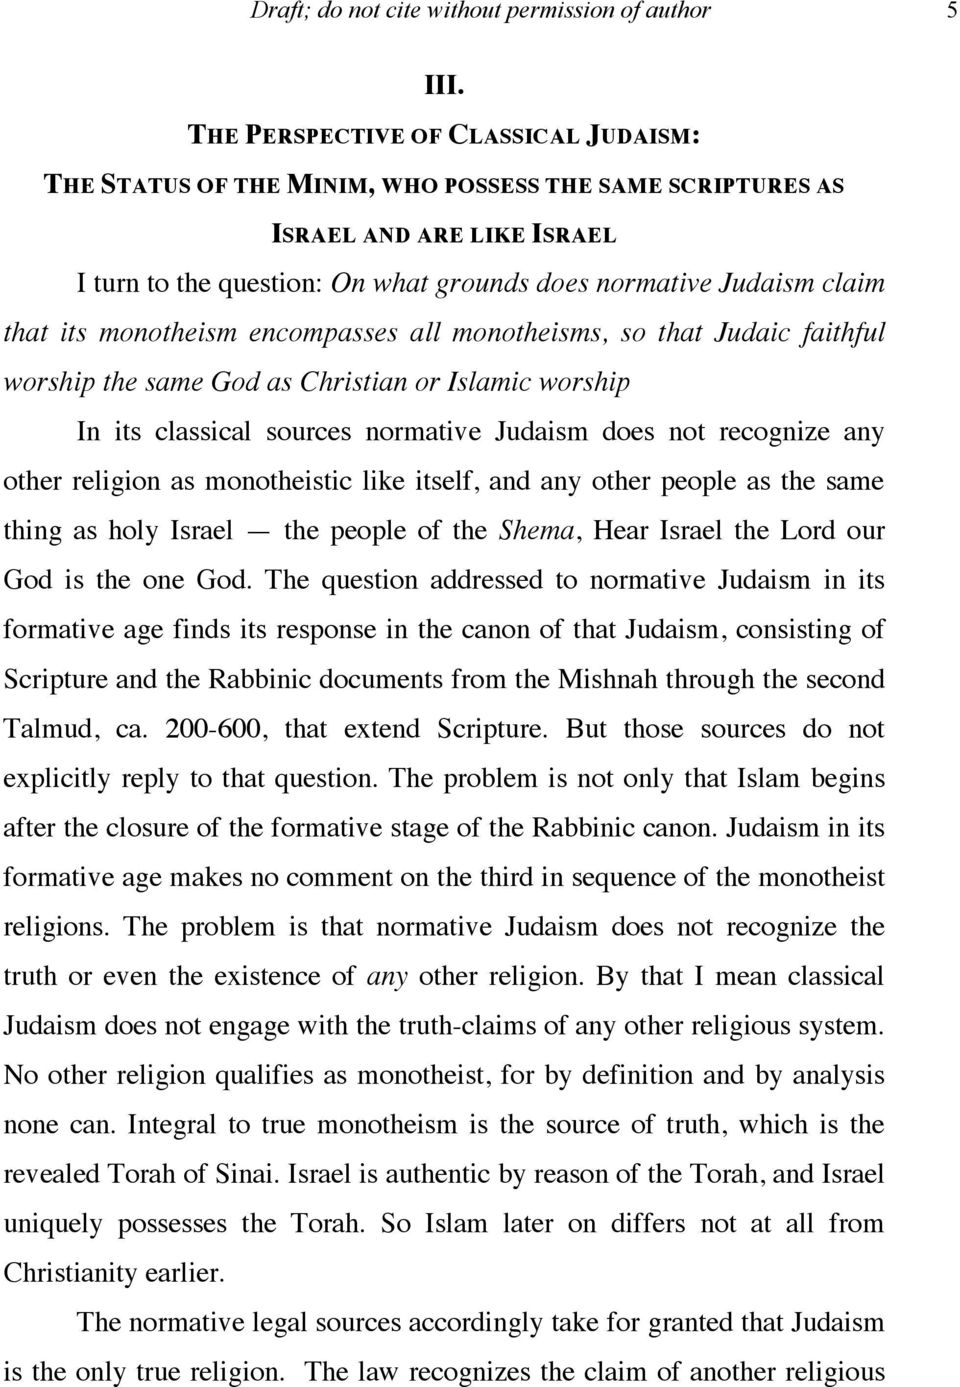 its monotheism encompasses all monotheisms, so that Judaic faithful worship the same God as Christian or Islamic worship In its classical sources normative Judaism does not recognize any other